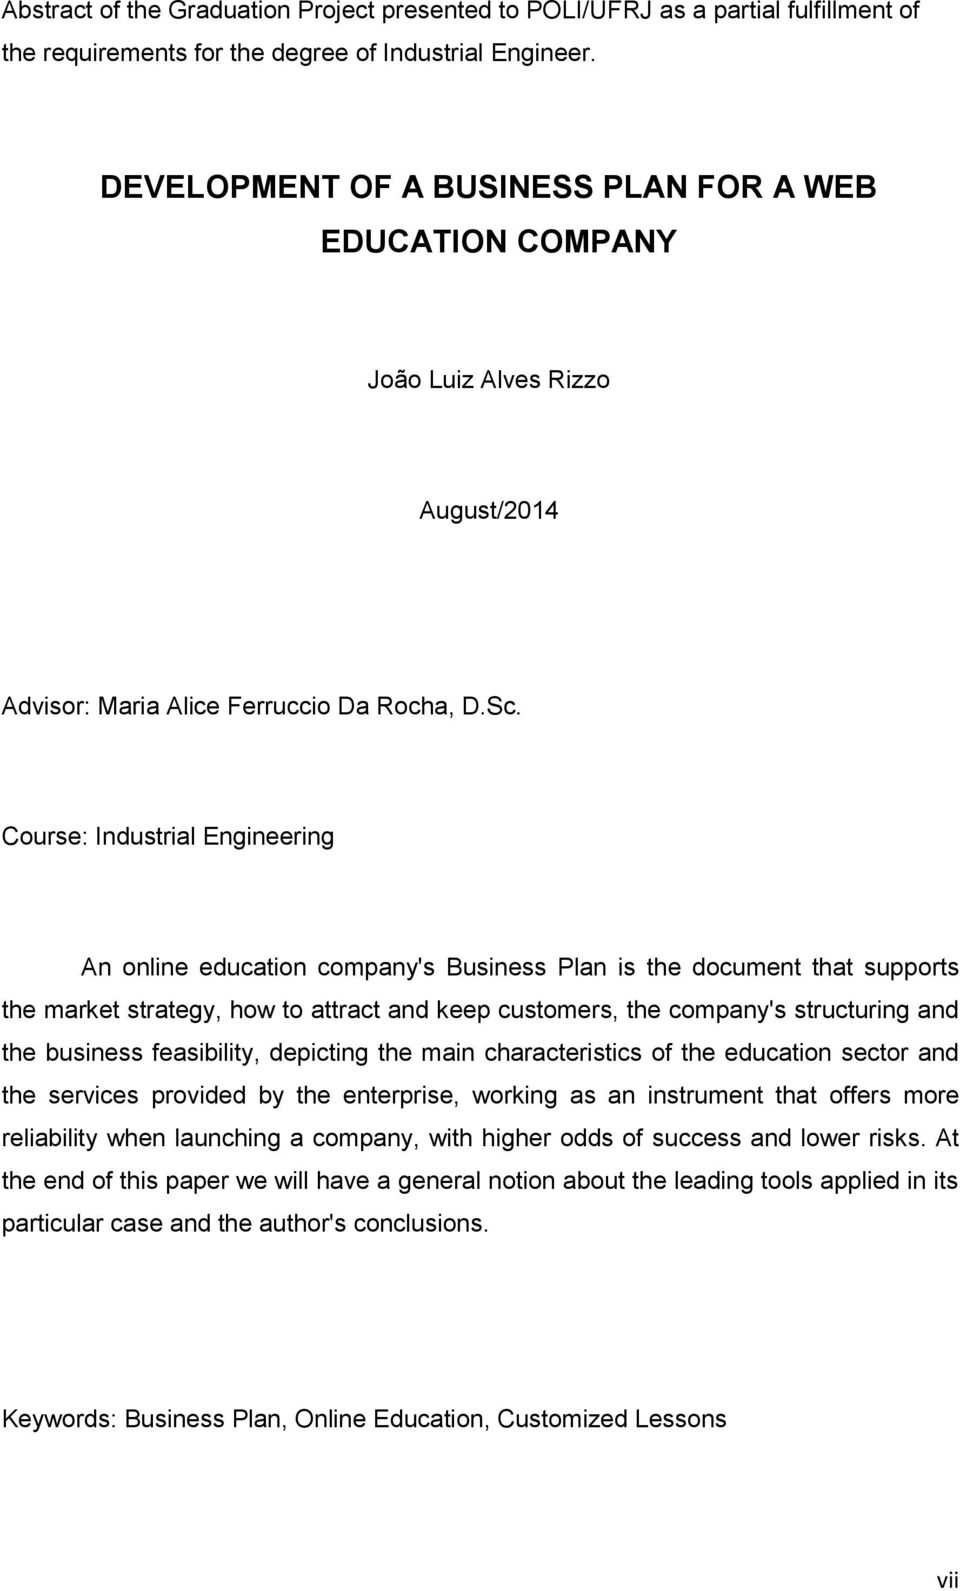 Course: Industrial Engineering An online education company's Business Plan is the document that supports the market strategy, how to attract and keep customers, the company's structuring and the